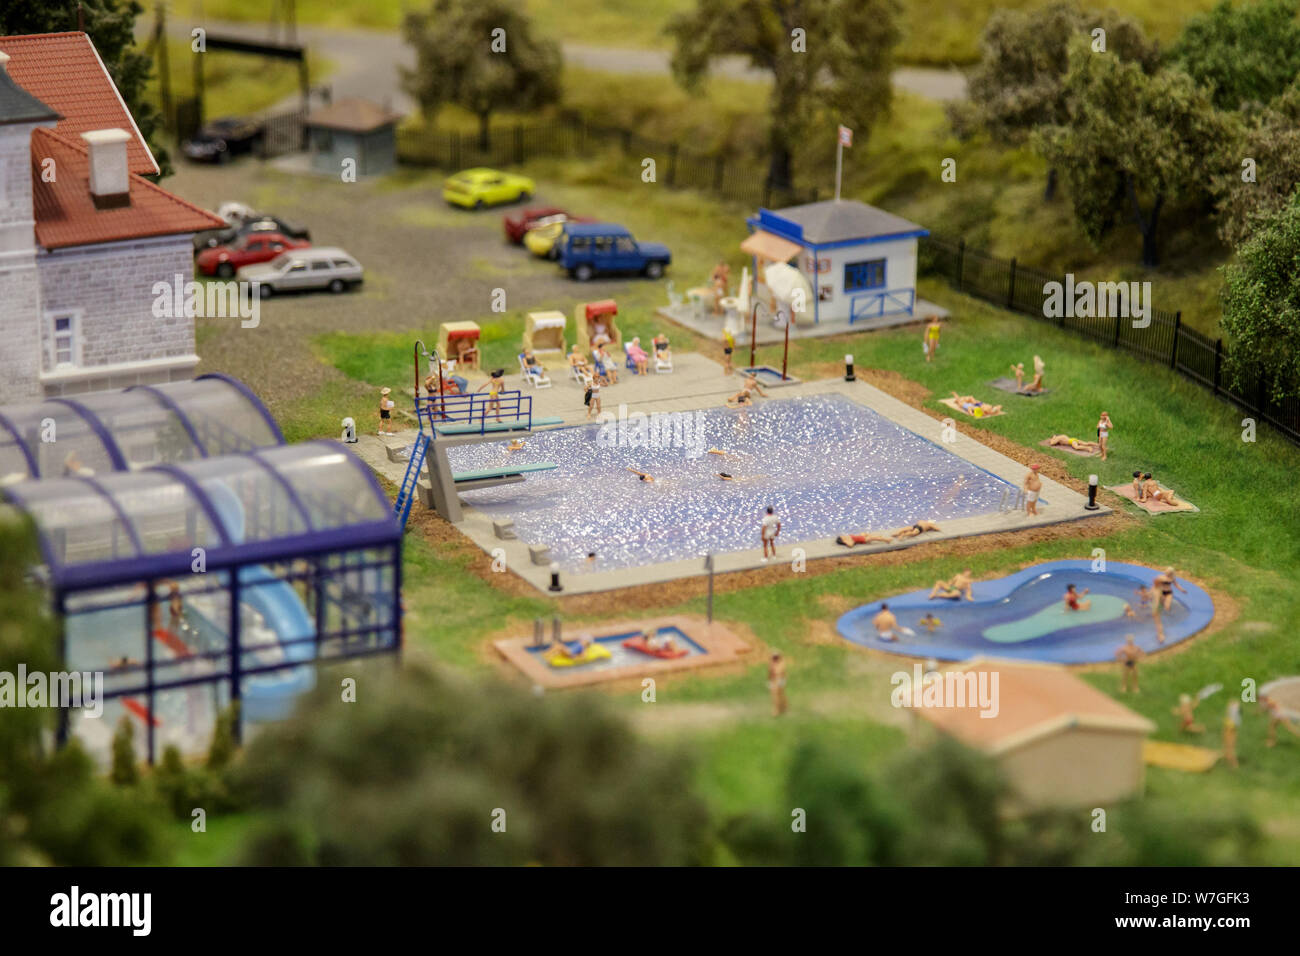 Budapest, Hungary, March 25, 2018: The maquette Of A Swimming Pool. Stock Photo